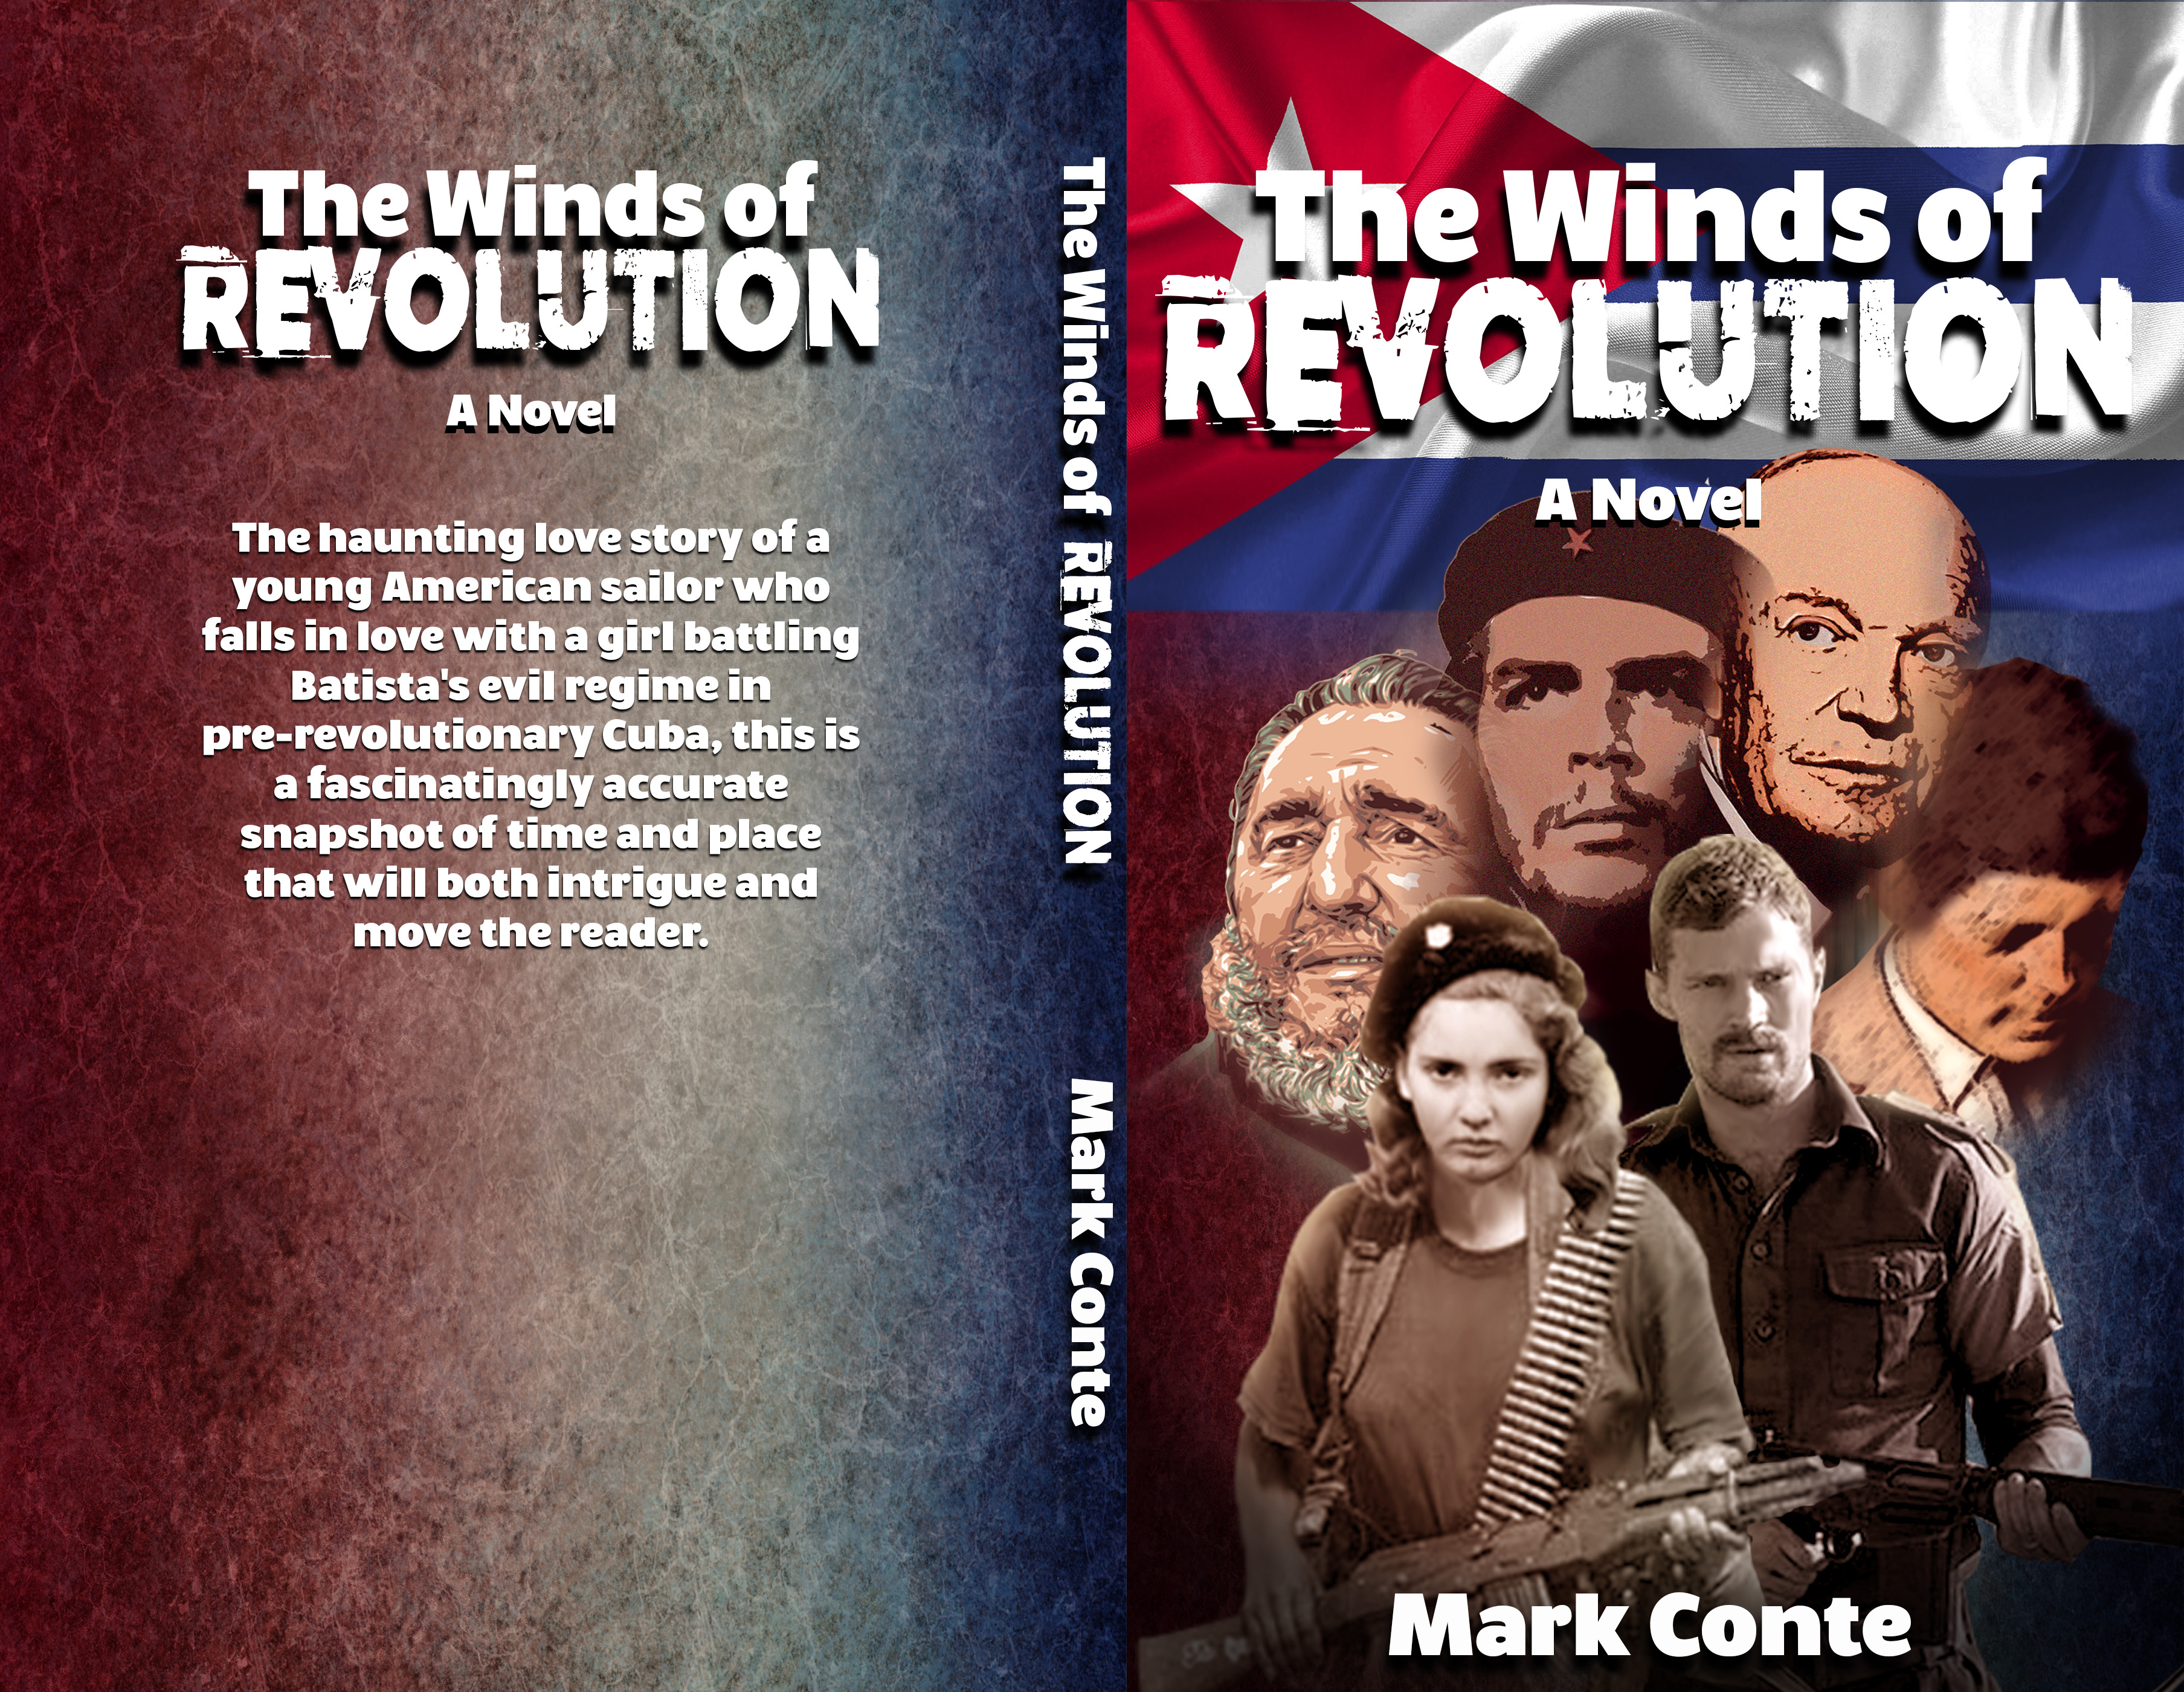 The winds of Revolution